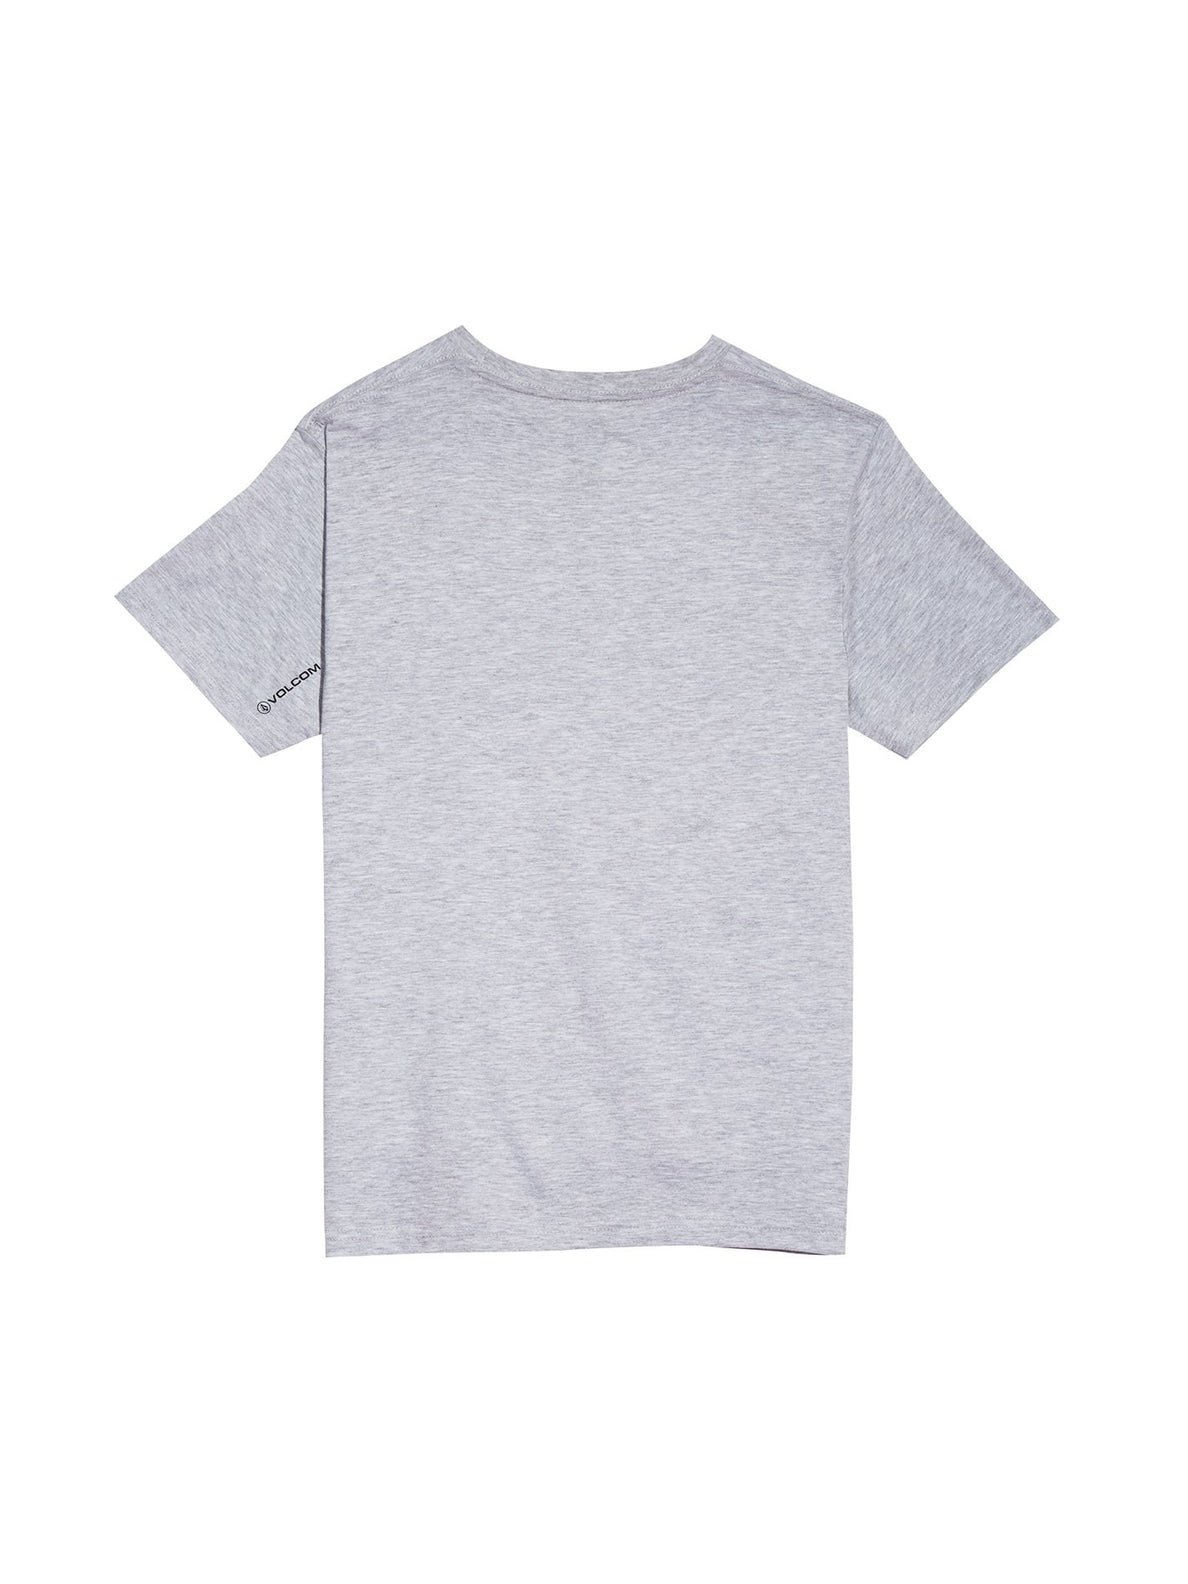 comes-around-bsc-ss-heather-grey-1 (Kinder)